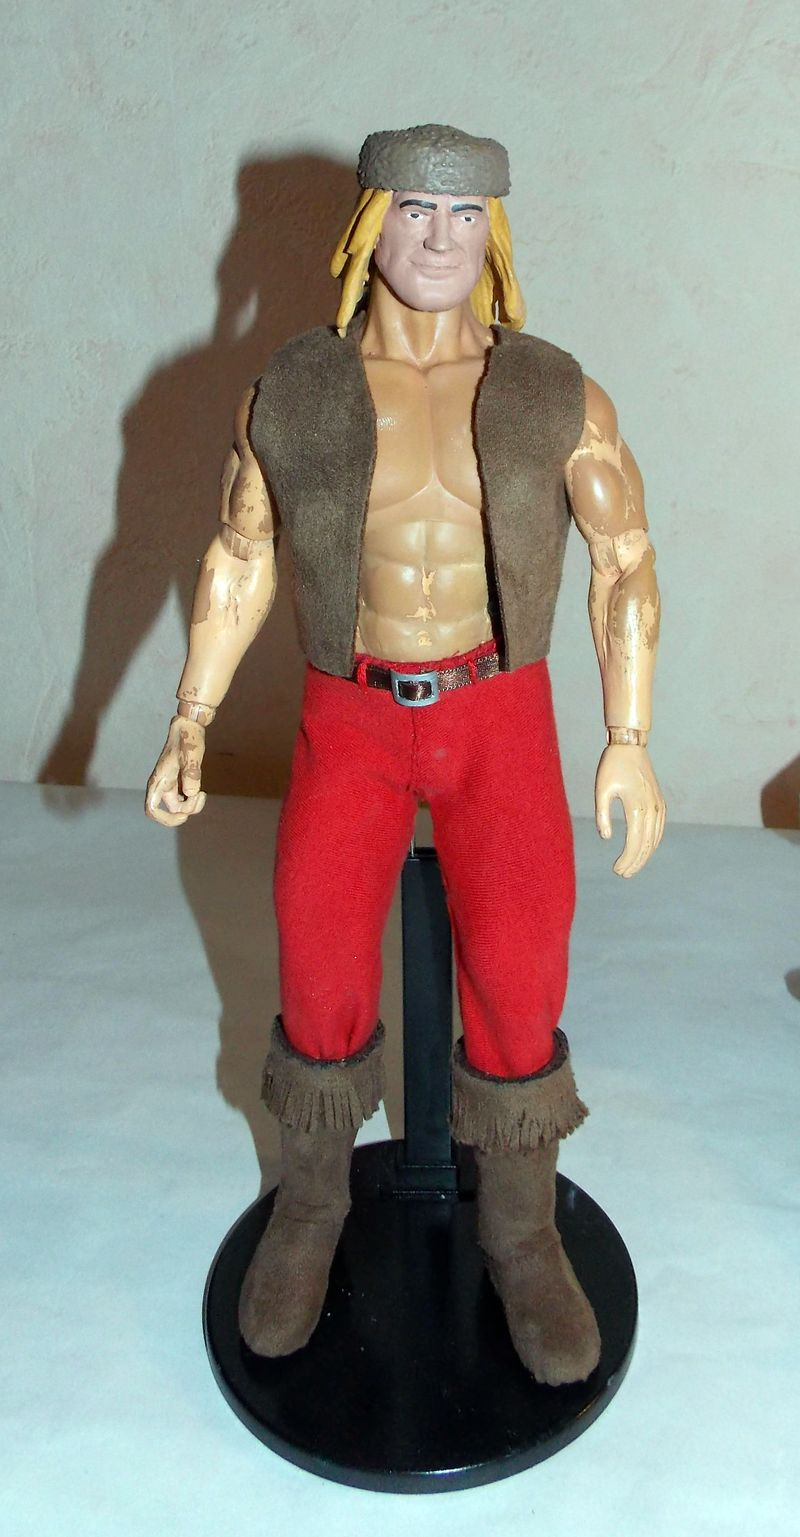 custom action figure Blek le roc.JPG